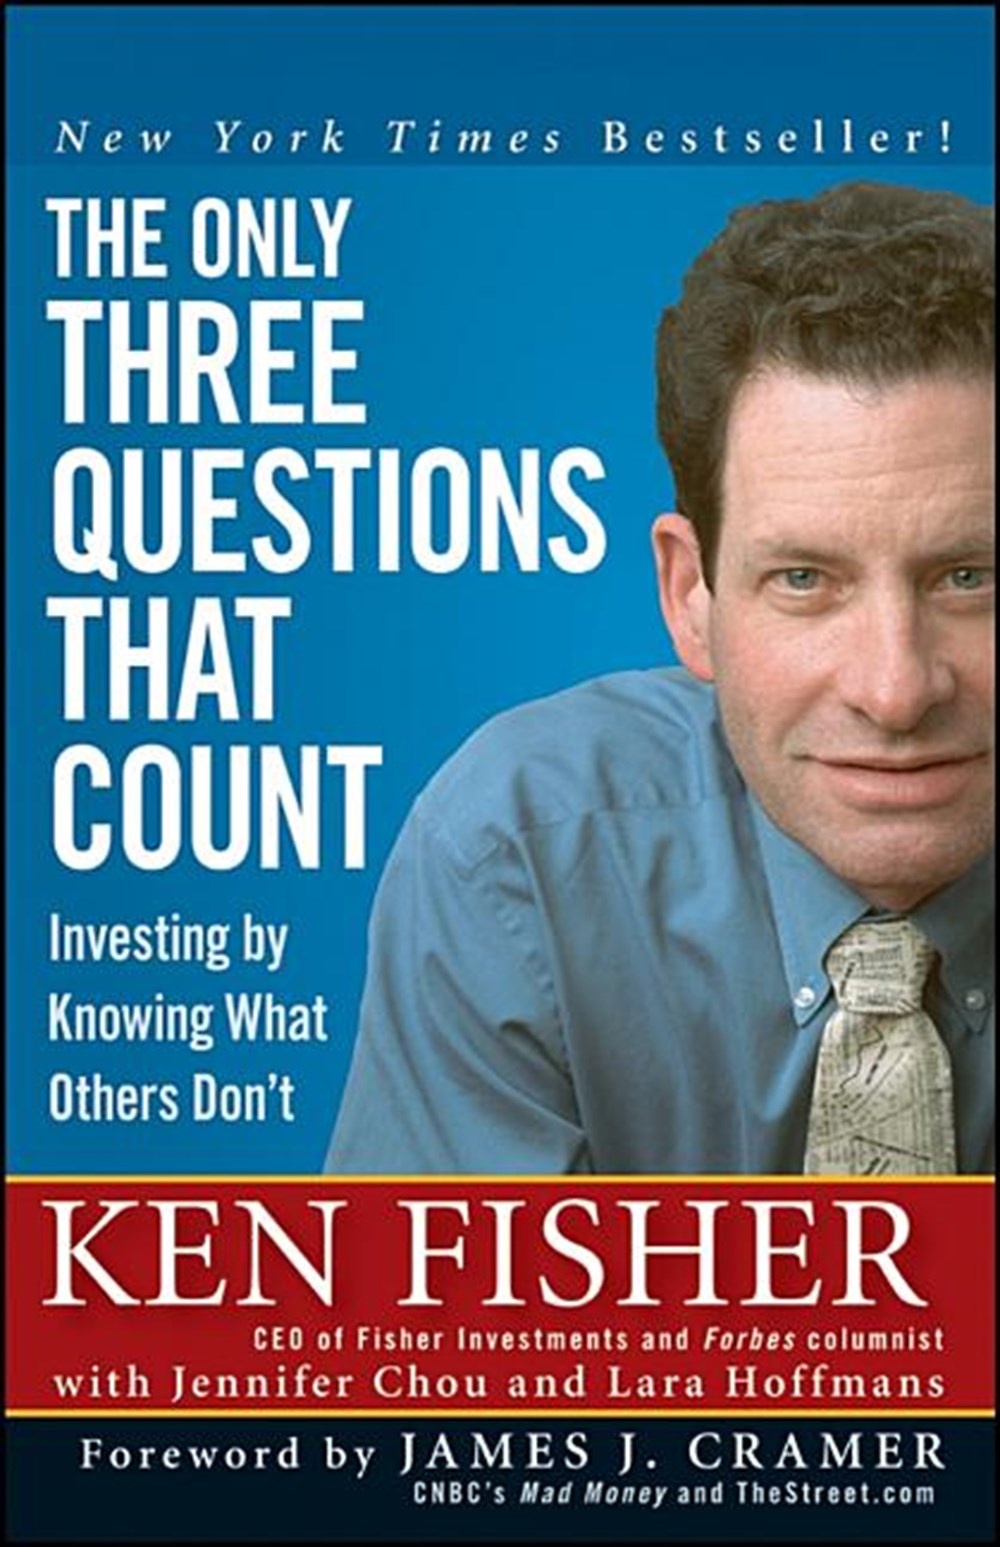 The Only Three Questions That Still Count by Ken Fisher.